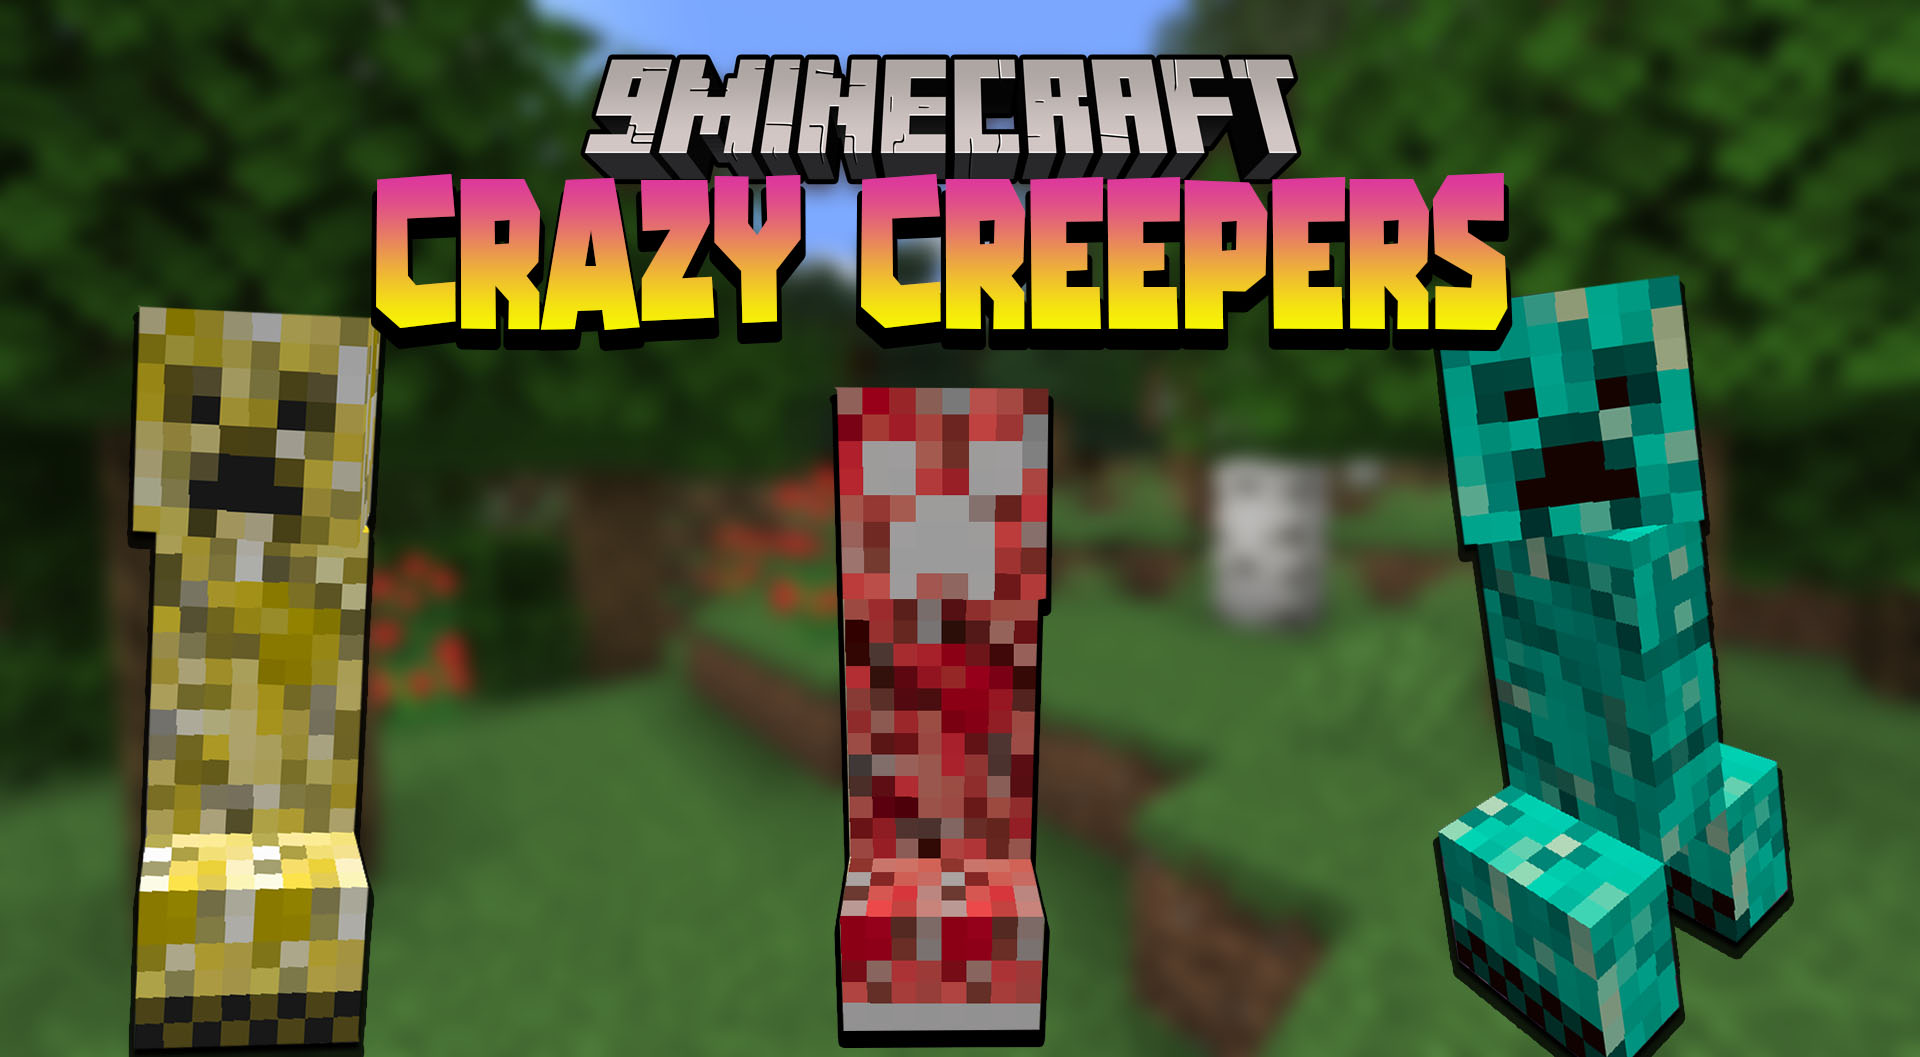 Crazy Creepers mod for Minecraft Thumbnail